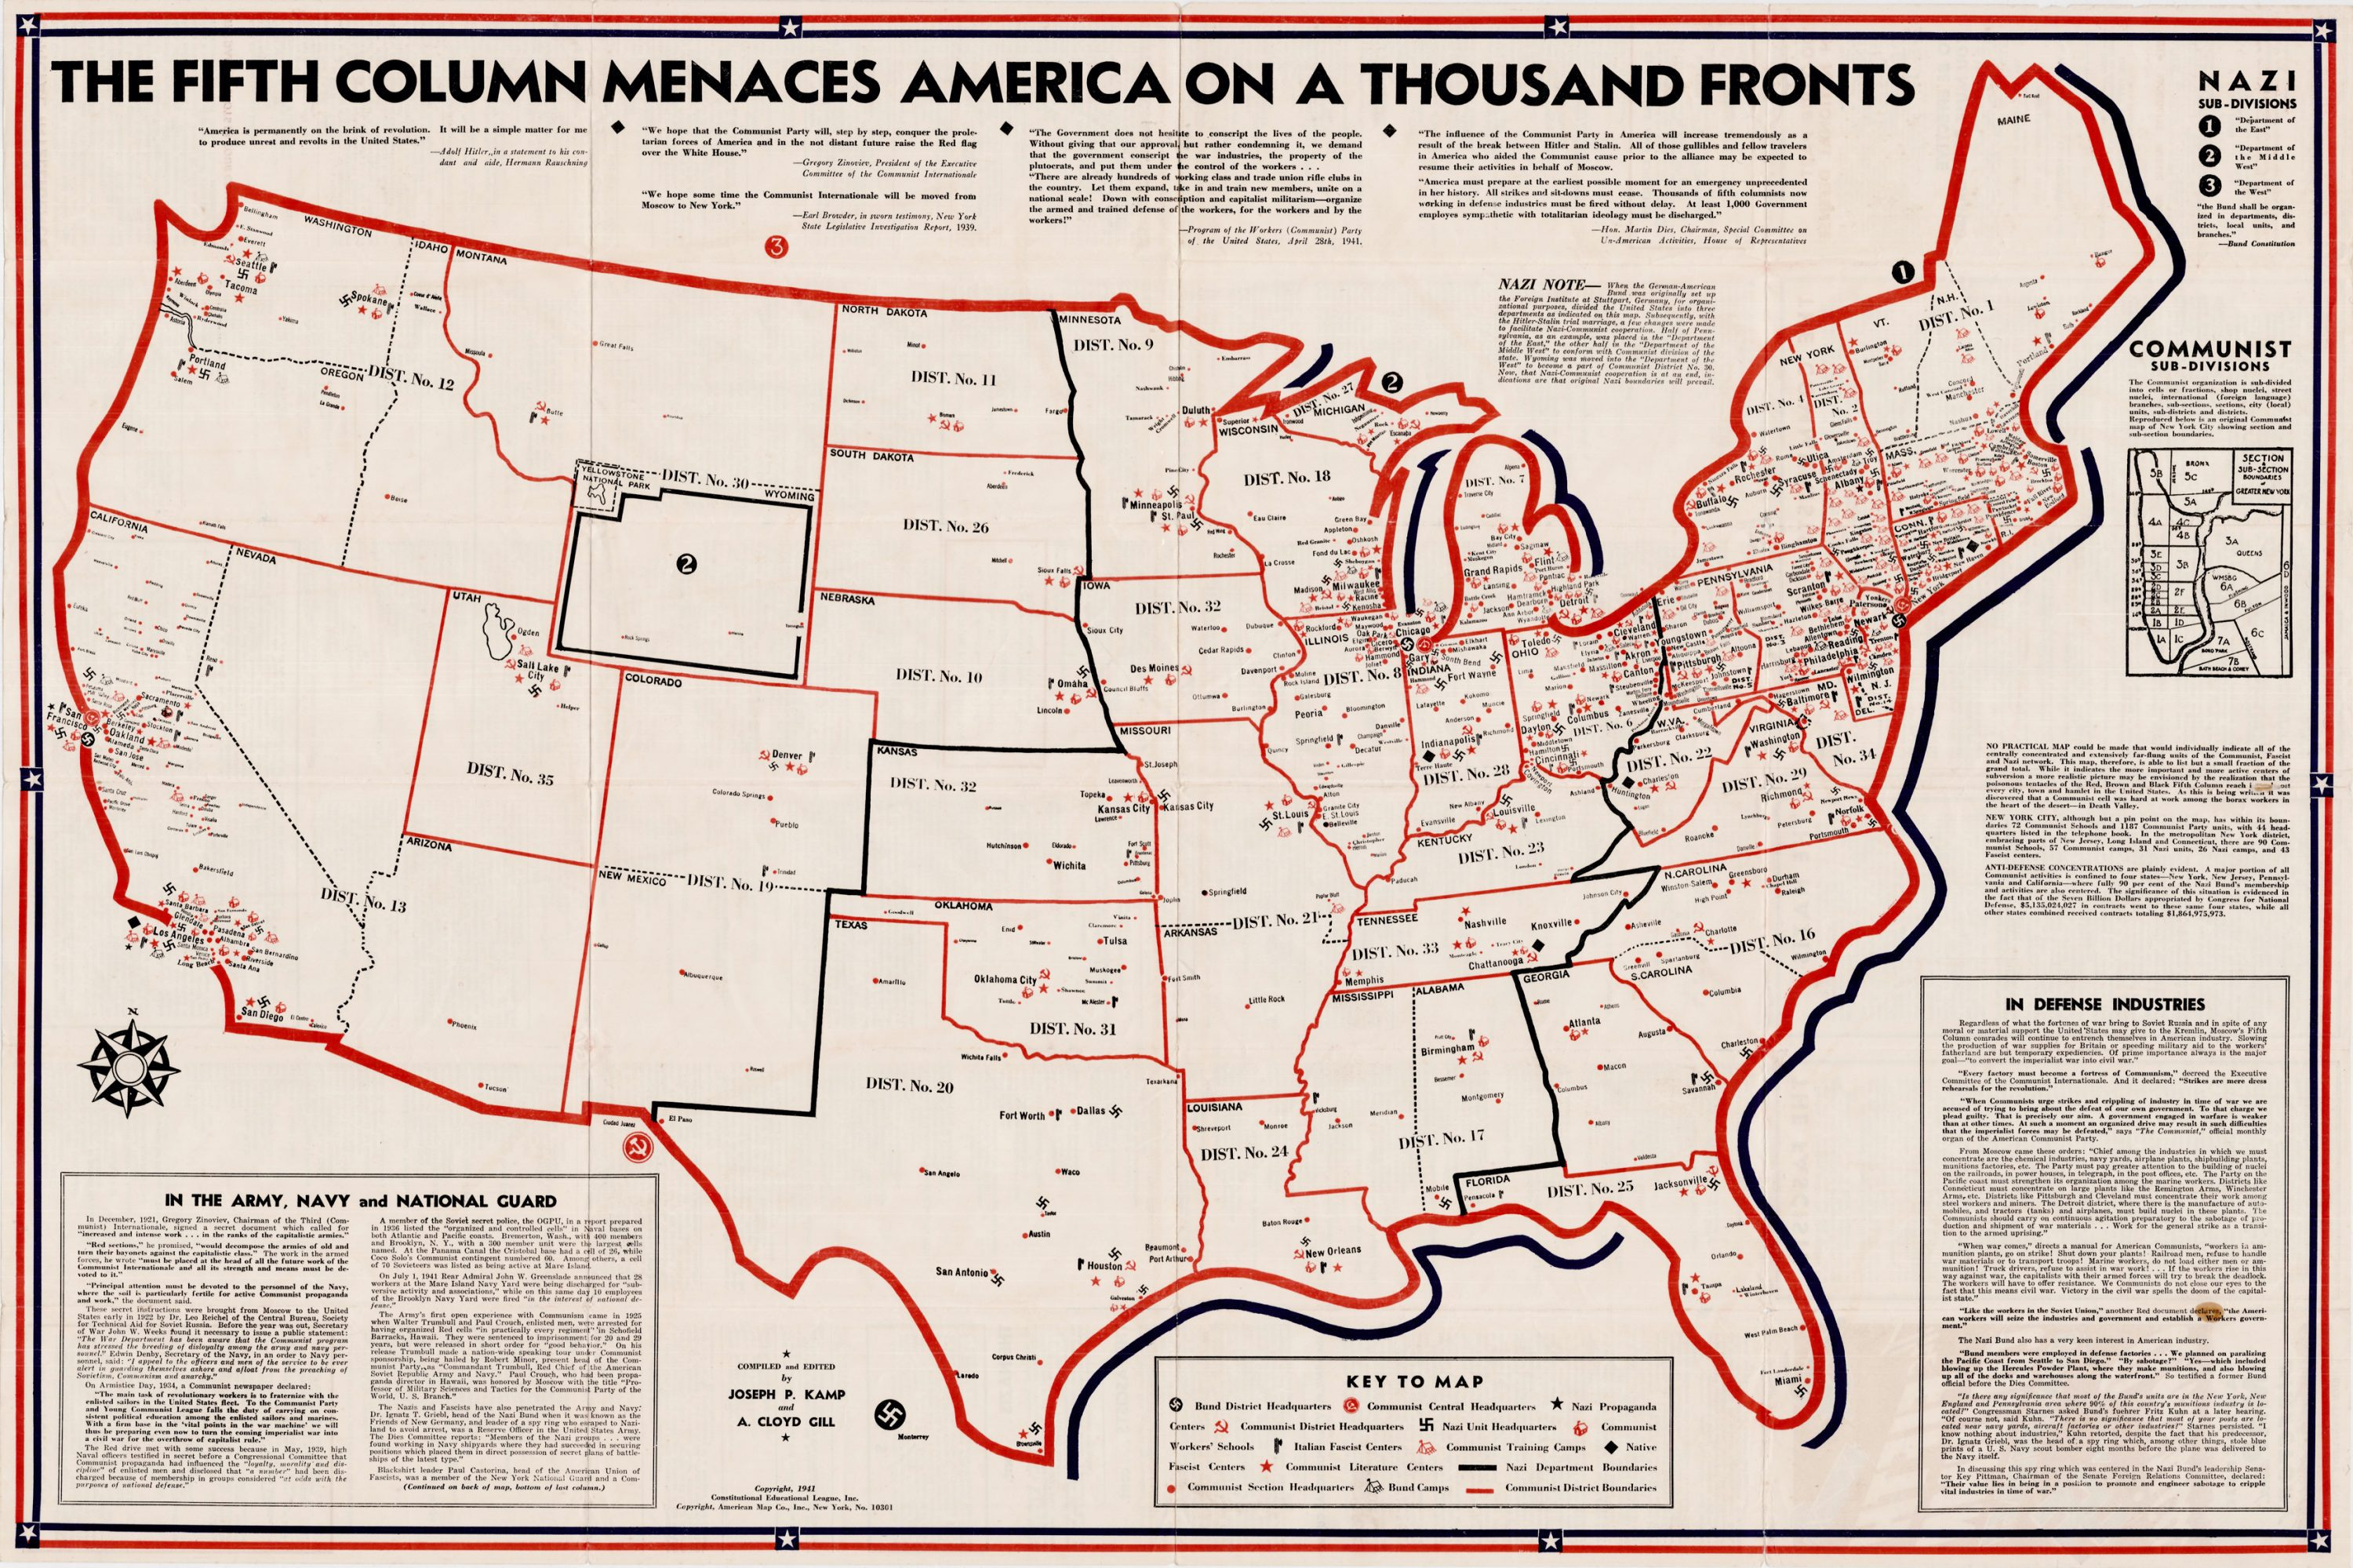 Anti-Communist map by the Constitutional Education League - Rare